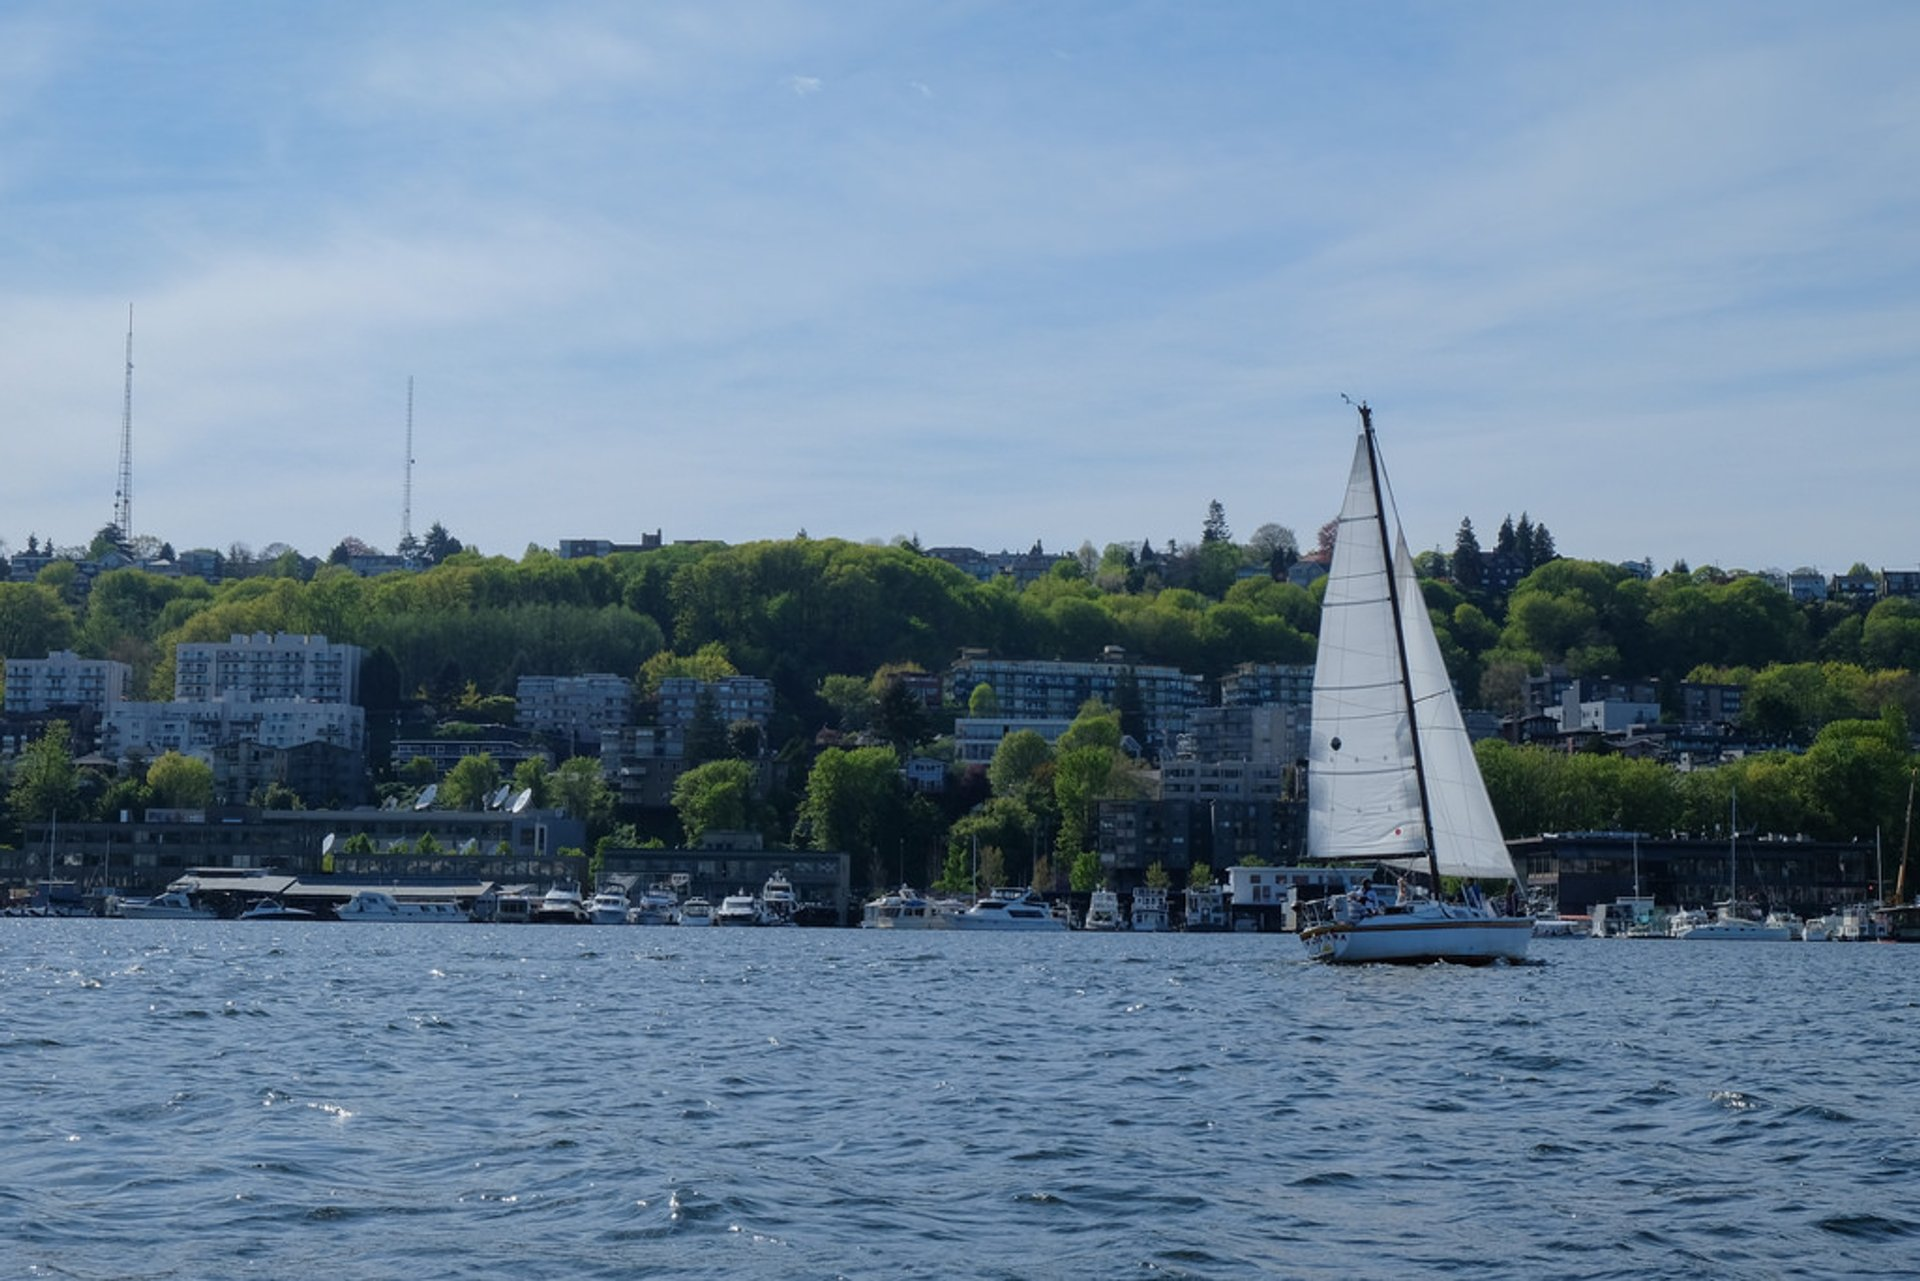 Seattle Boat Tour at the Union Lake 2019